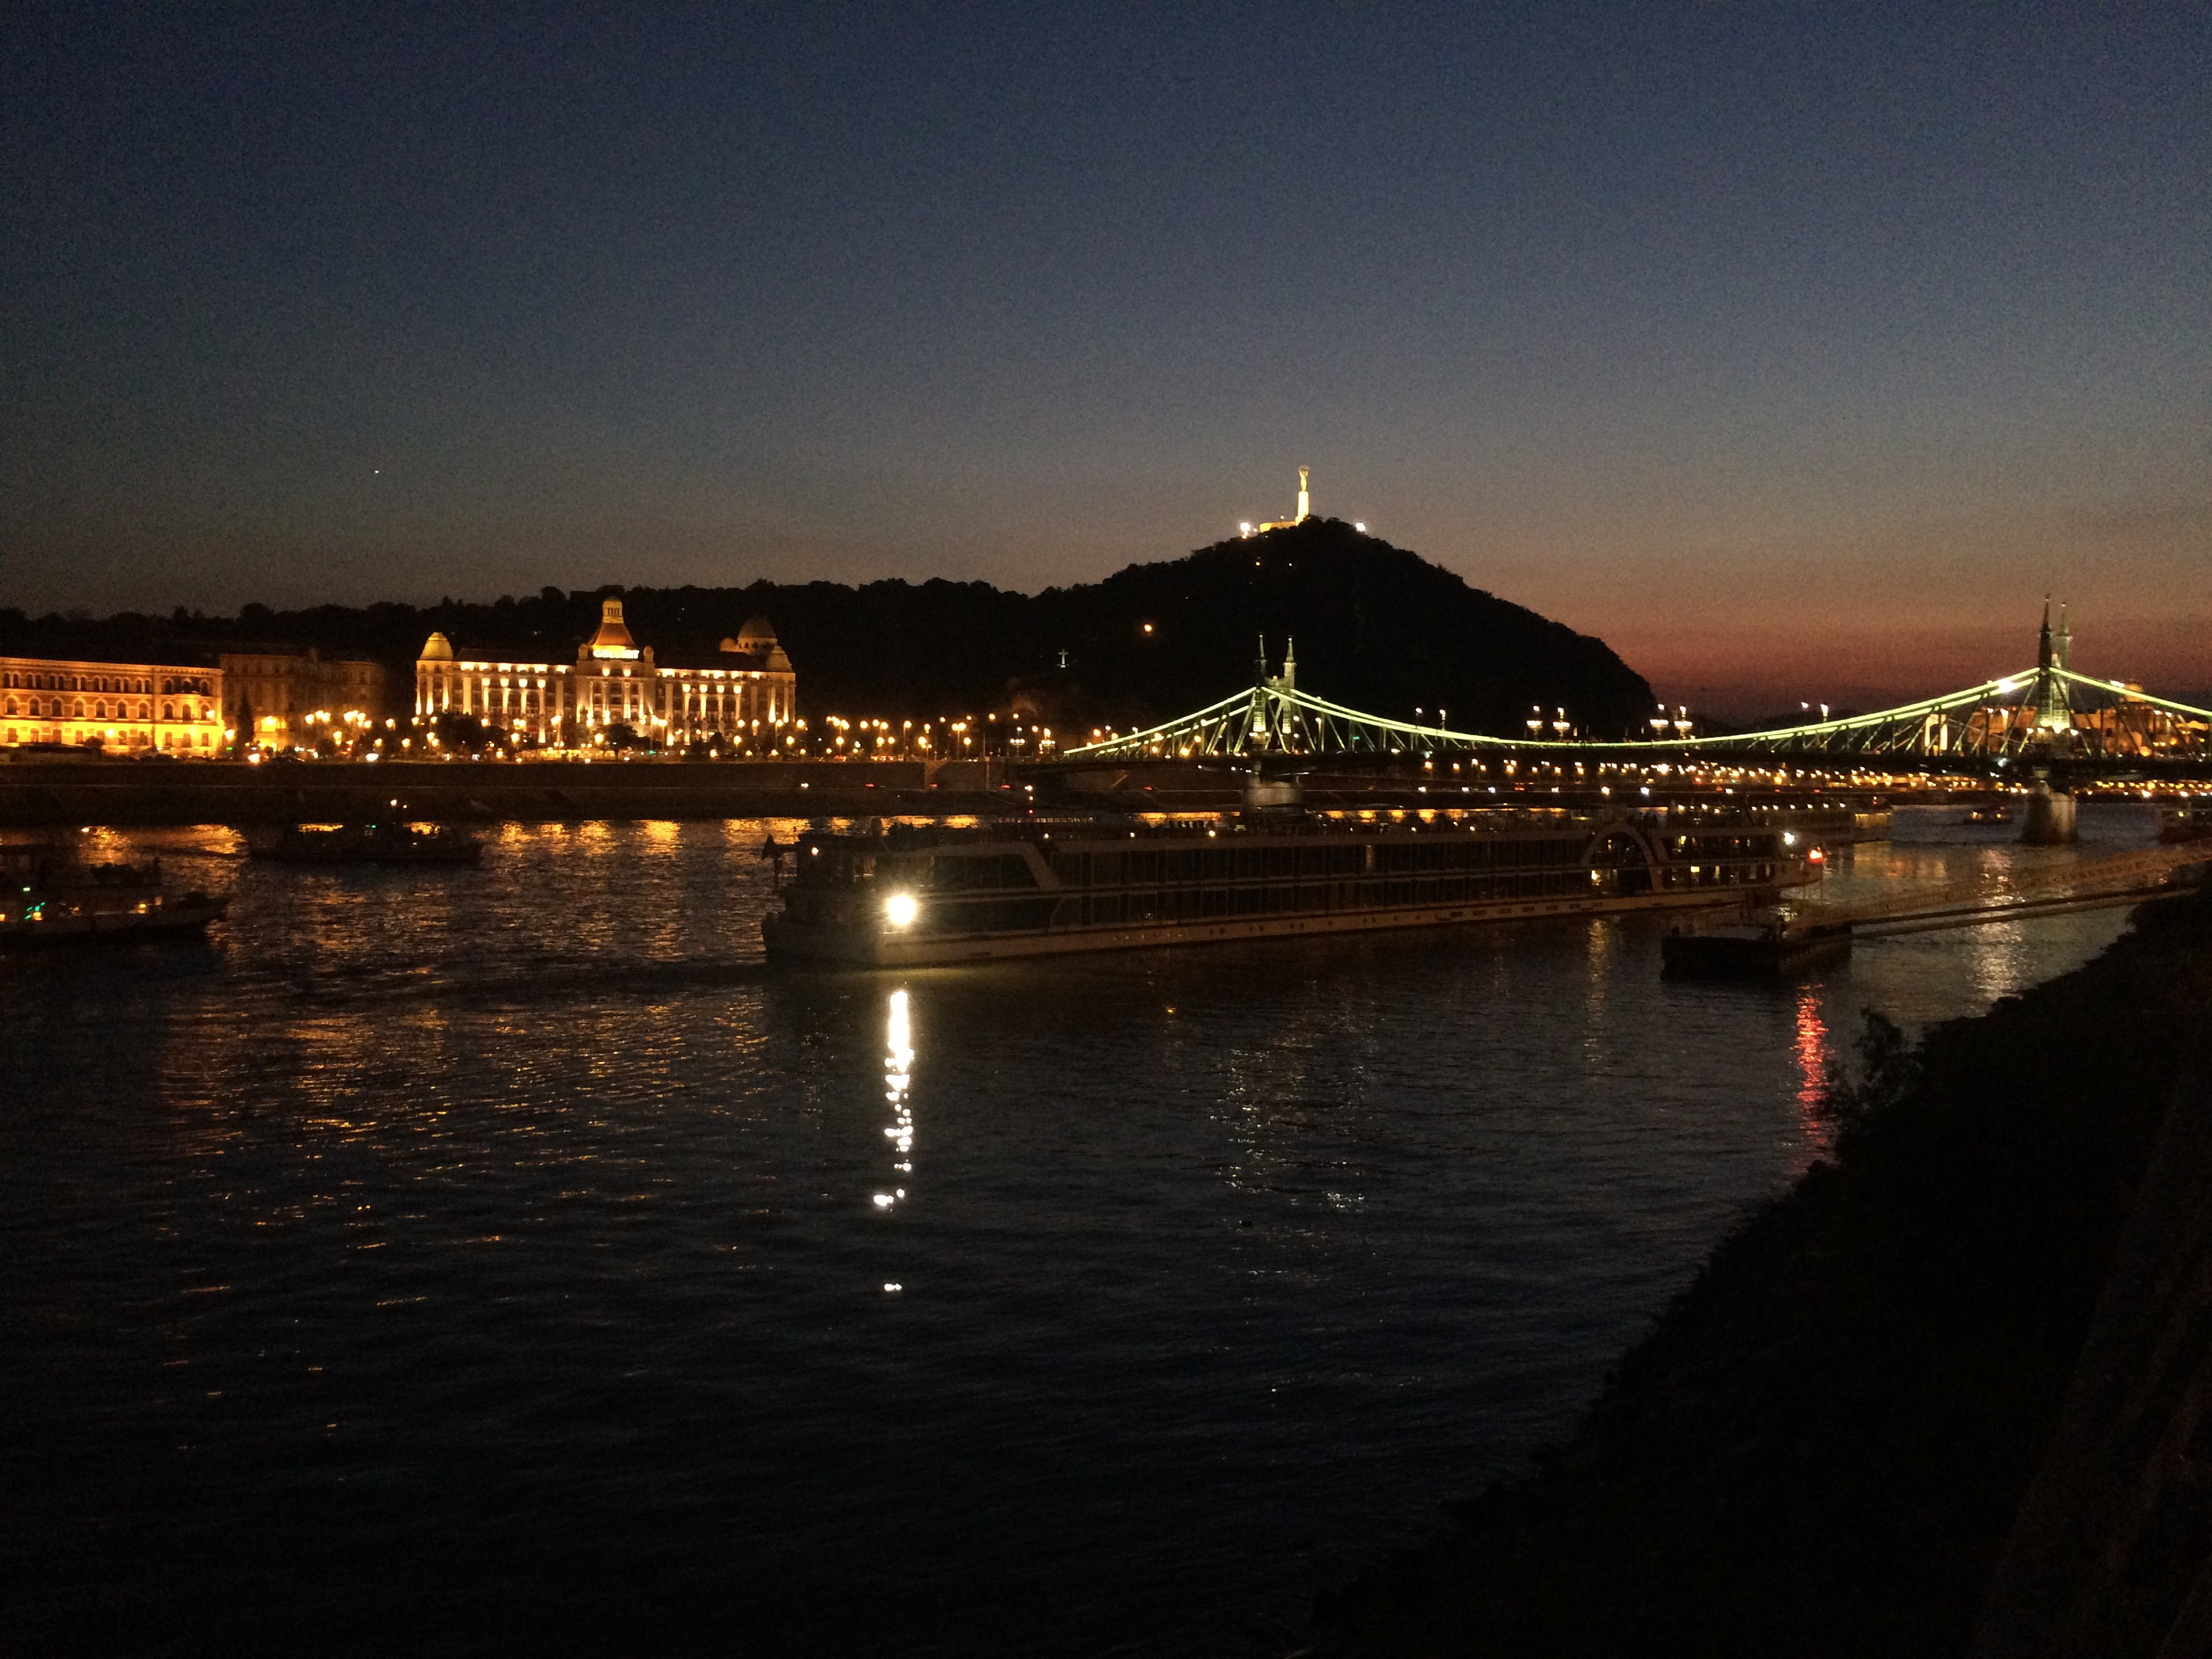 Photographs from my trip to Budapest